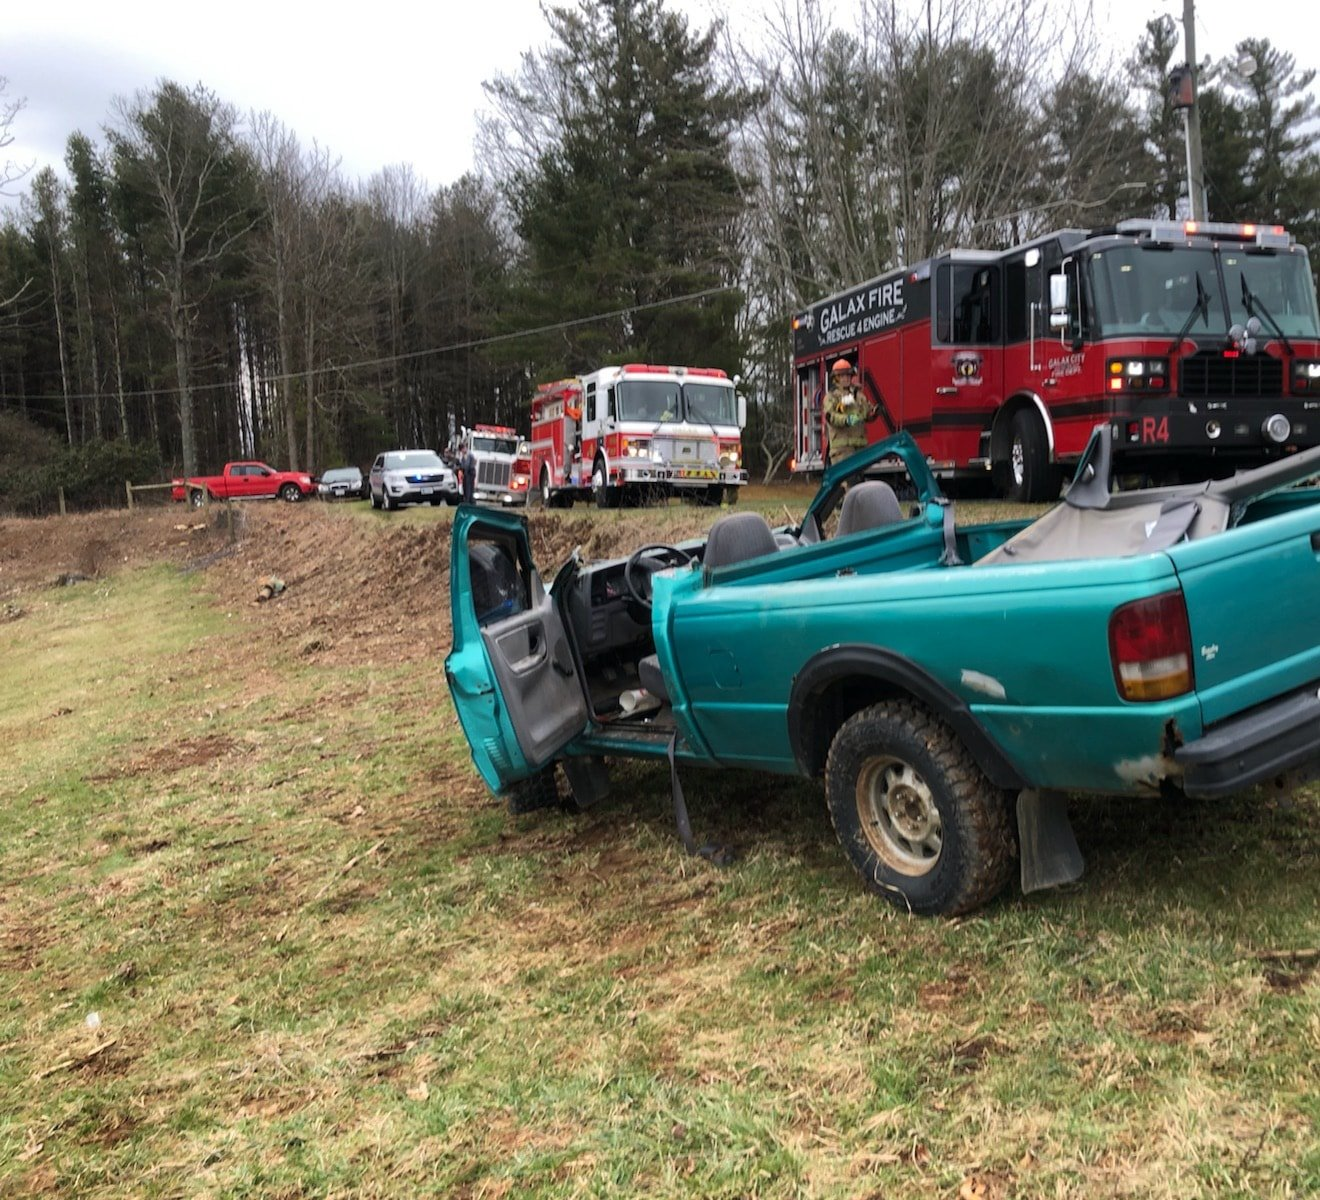 Galax firefighters had to remove a passenger trapped inside a pickup truck that had rolled off the road in a multi-vehicle crash on Sunday, Feb. 16. (Photo: Courtesy Galax Fire Department)